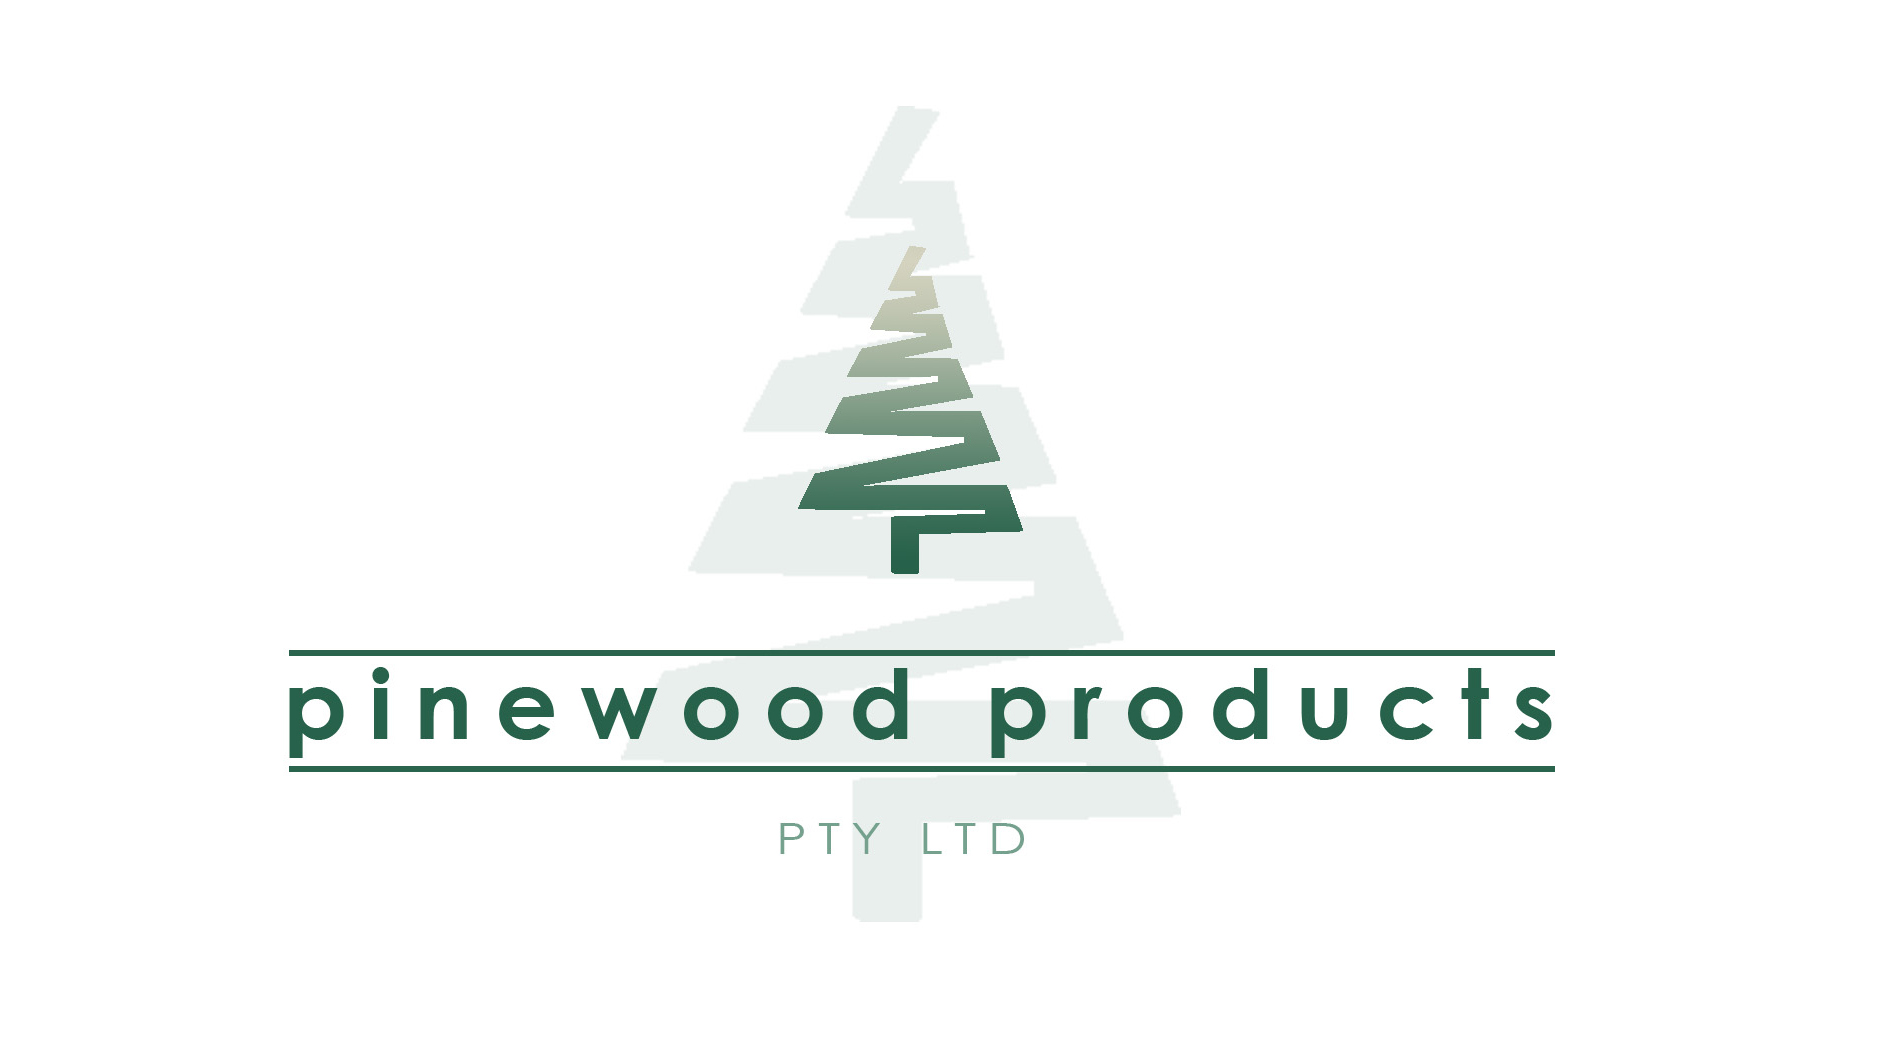 PINEWOOD PRODUCTS LOGO